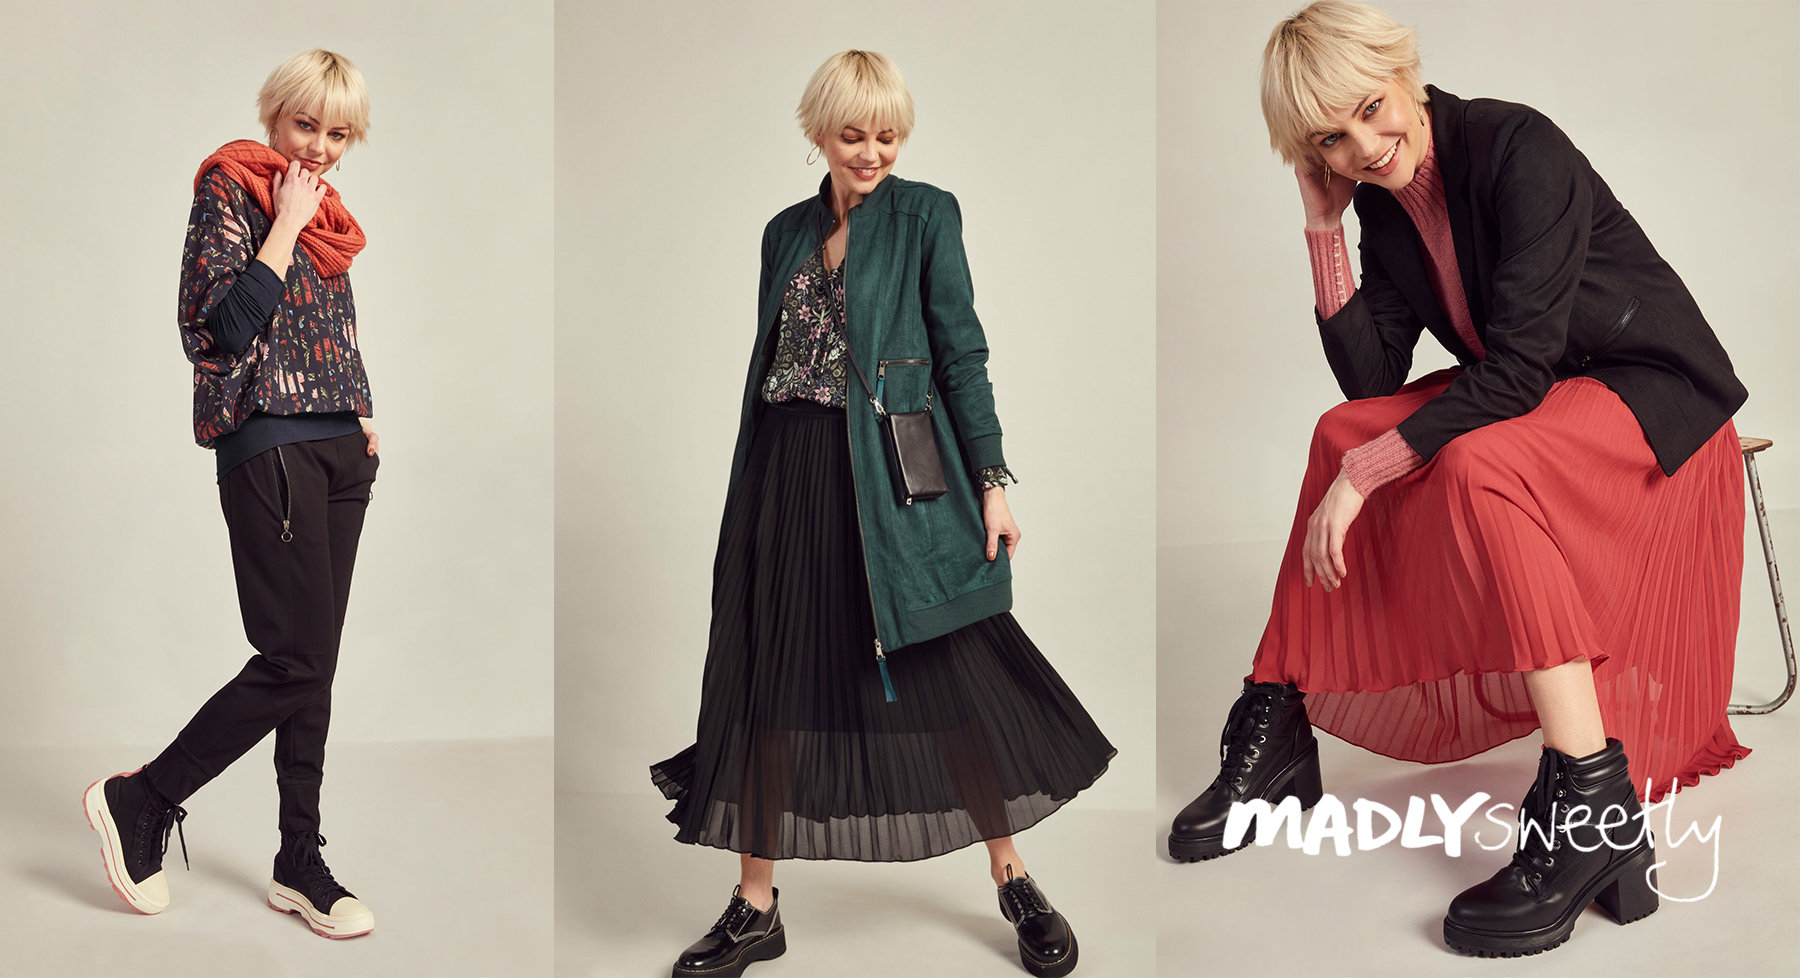 madly sweetly aw21